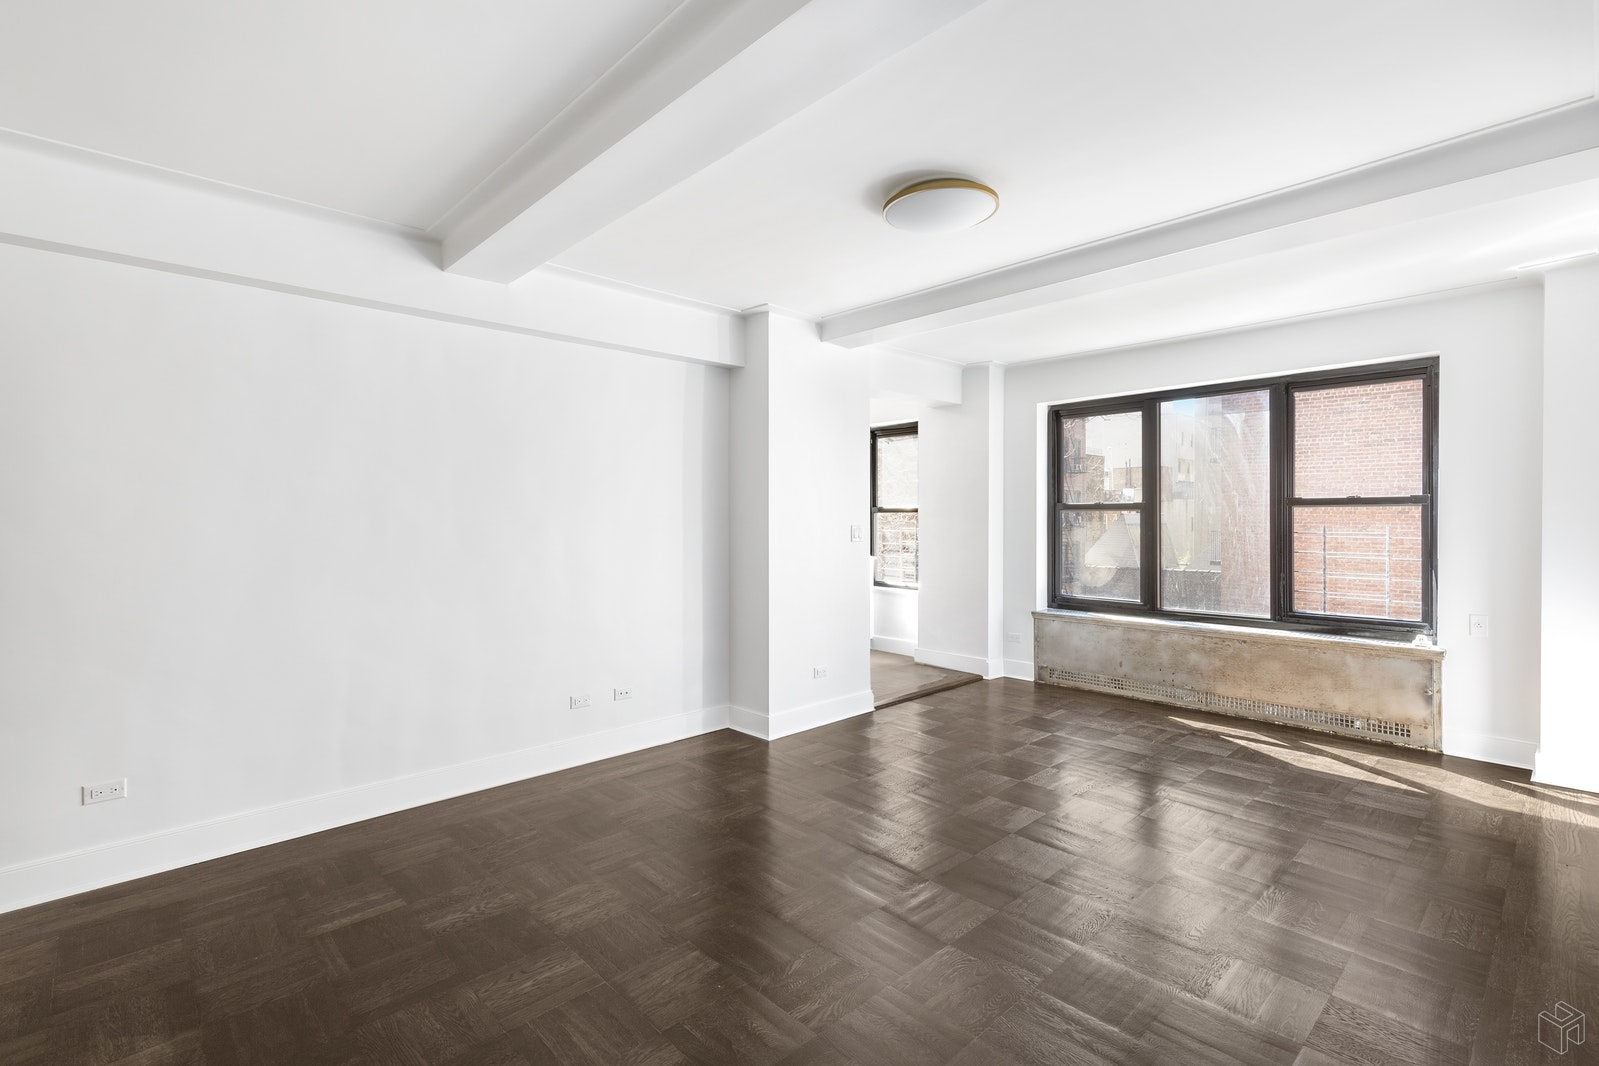 56 Seventh Avenue 4f, West Village, NYC, 10011, Price Not Disclosed, Rented Property, Halstead Real Estate, Photo 3